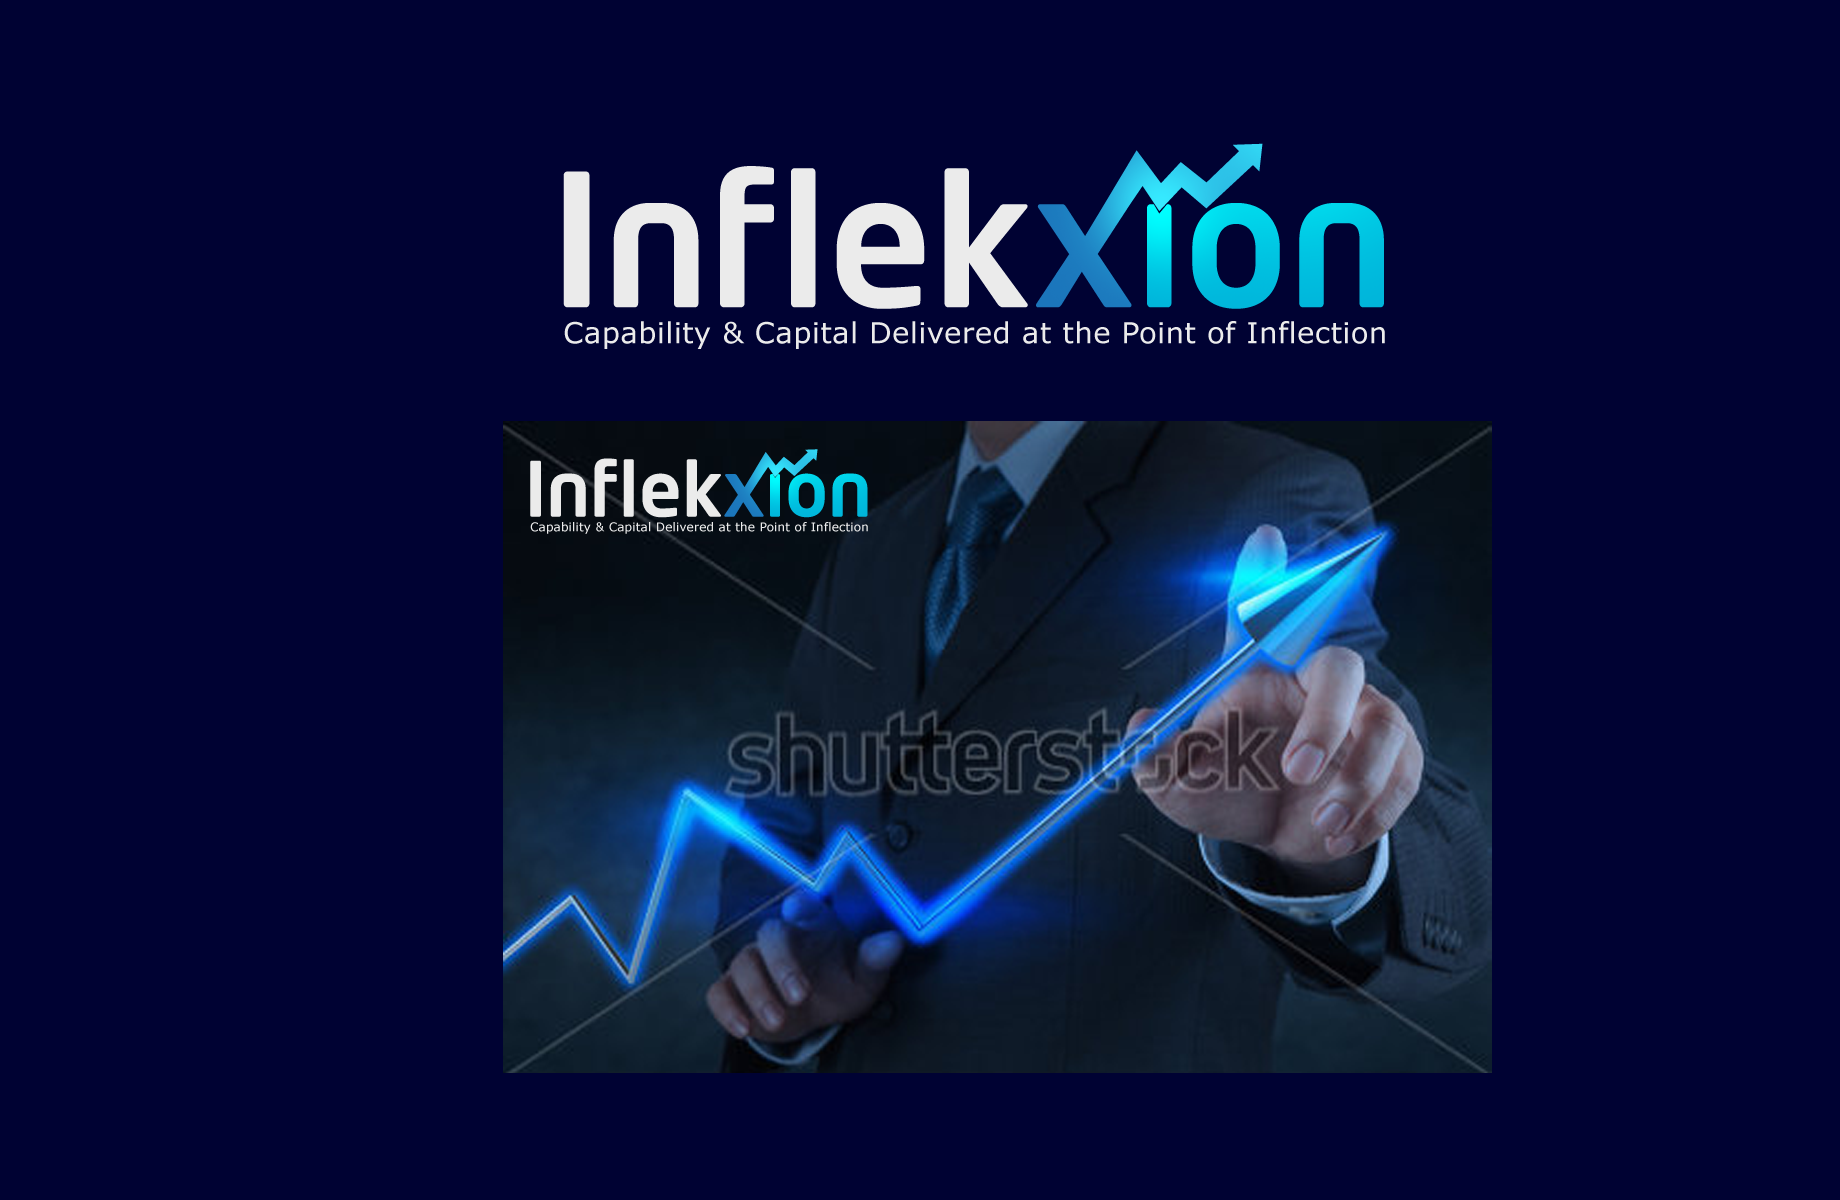 Logo Design by Jan Chua - Entry No. 95 in the Logo Design Contest Professional Logo Design for Inflekxion.